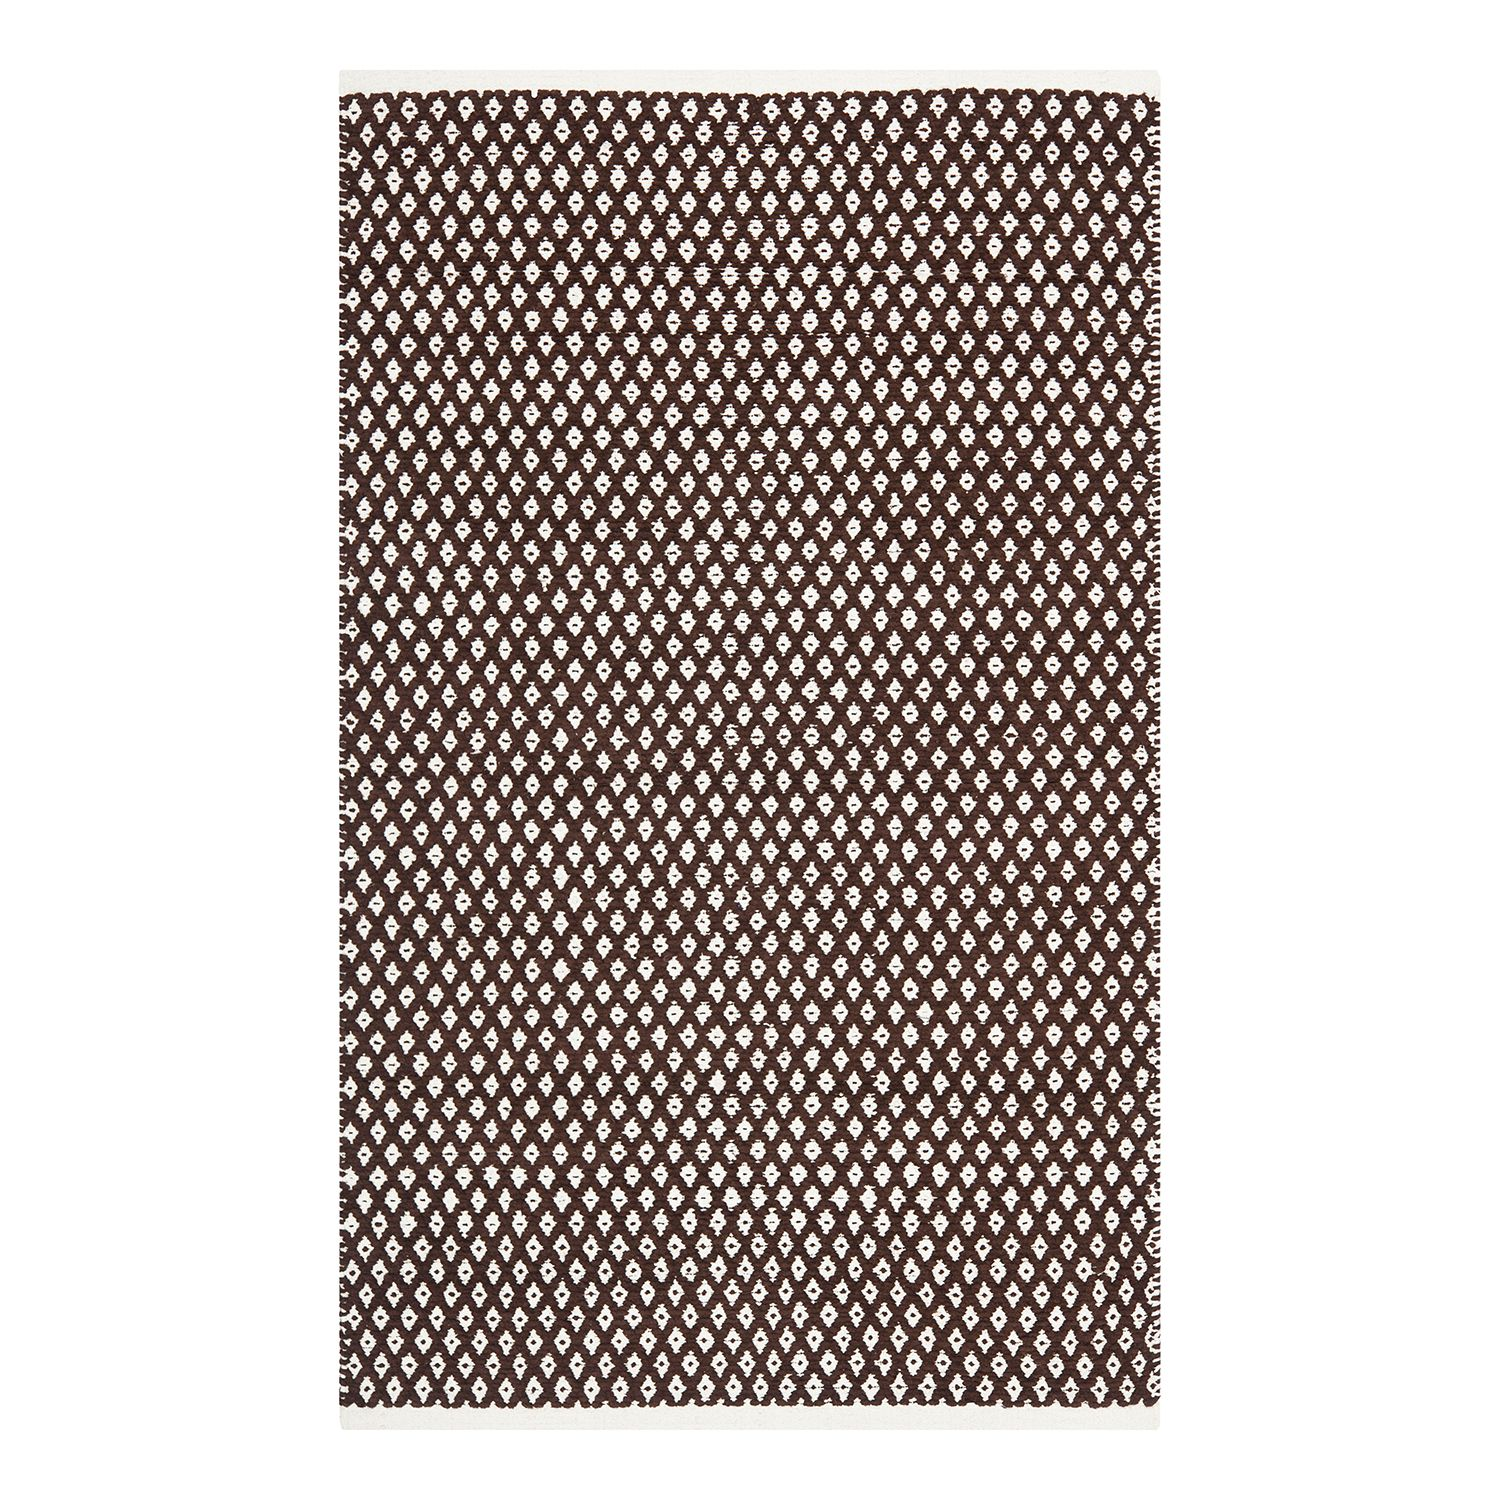 Home 24 - Tapis nantucket - marron, safavieh